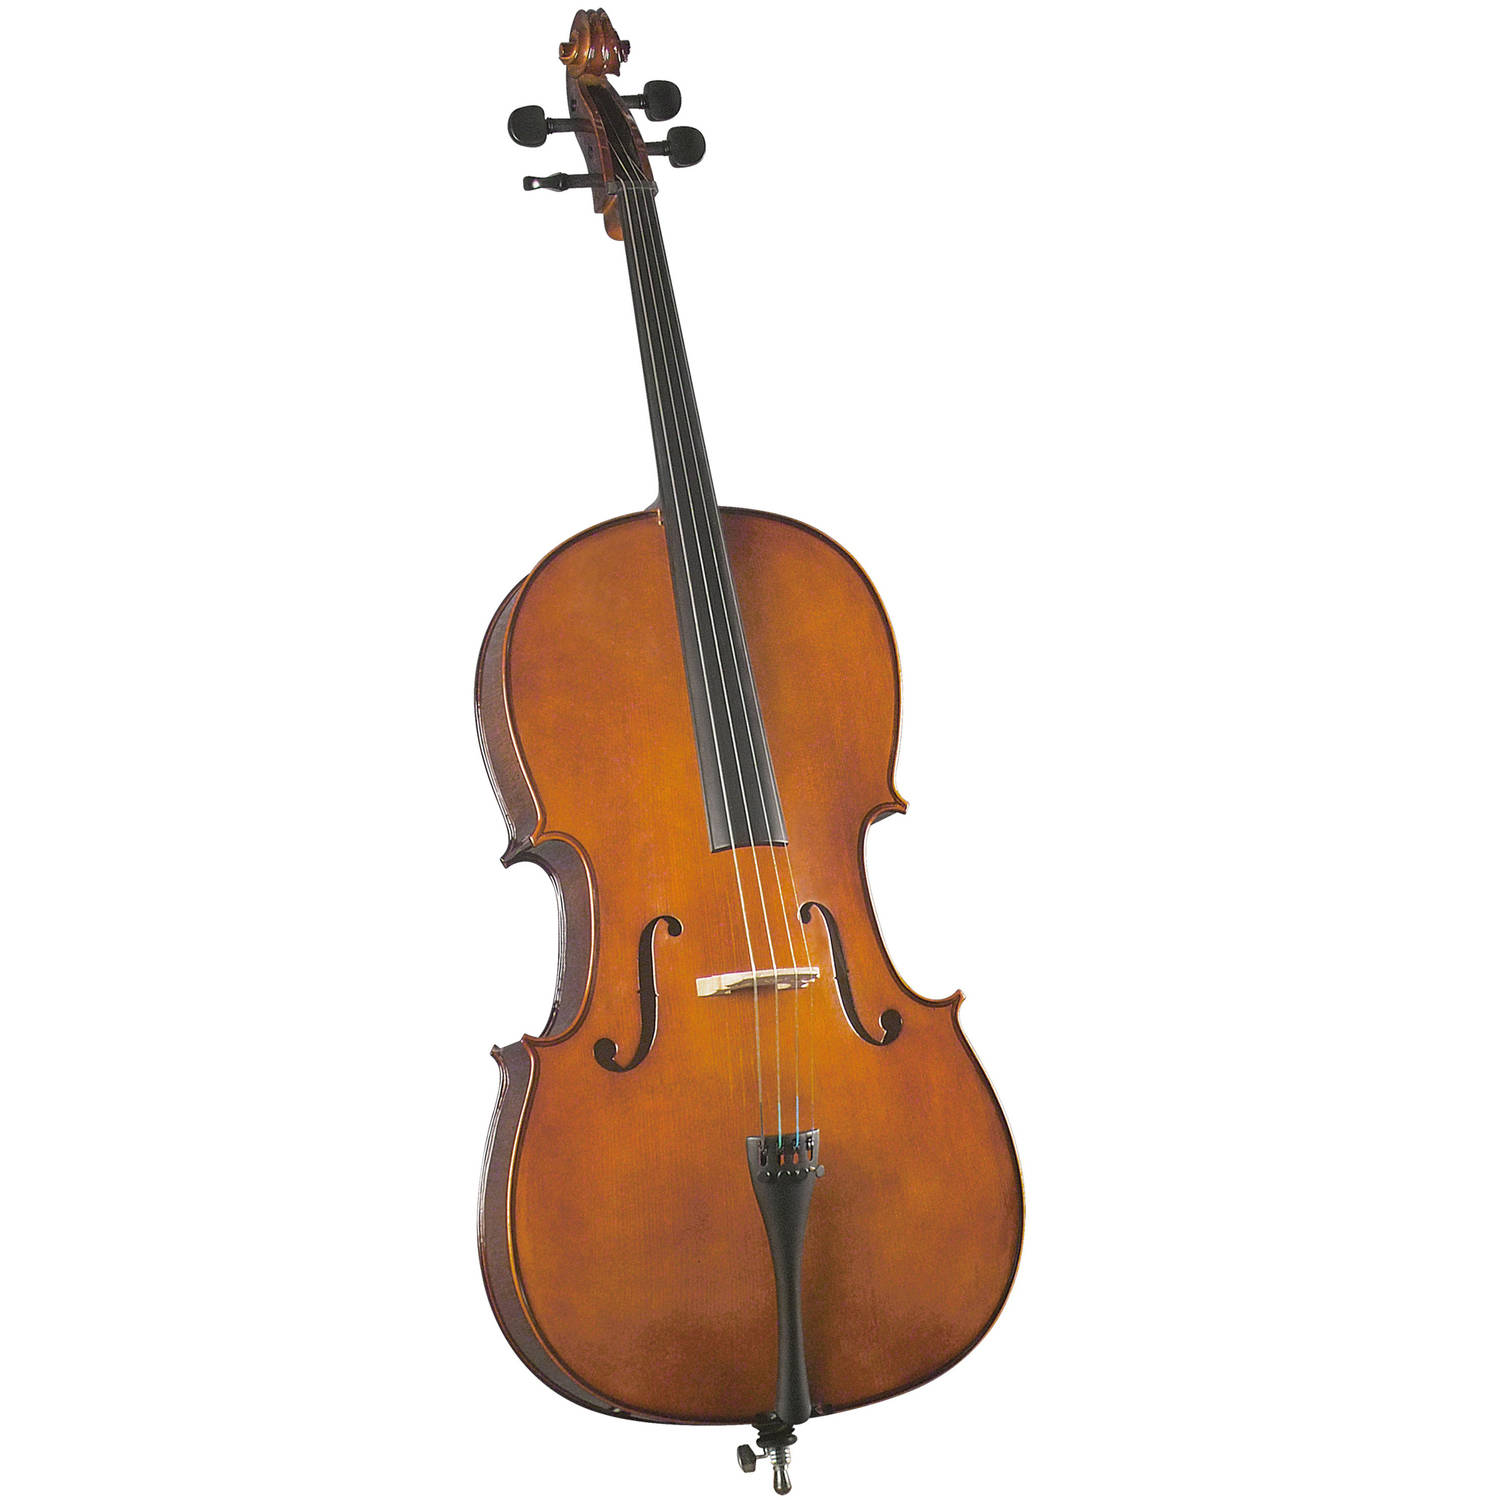 Cremona SC-130 Premier Novice Cello Outfit, 3 4 Size by Generic